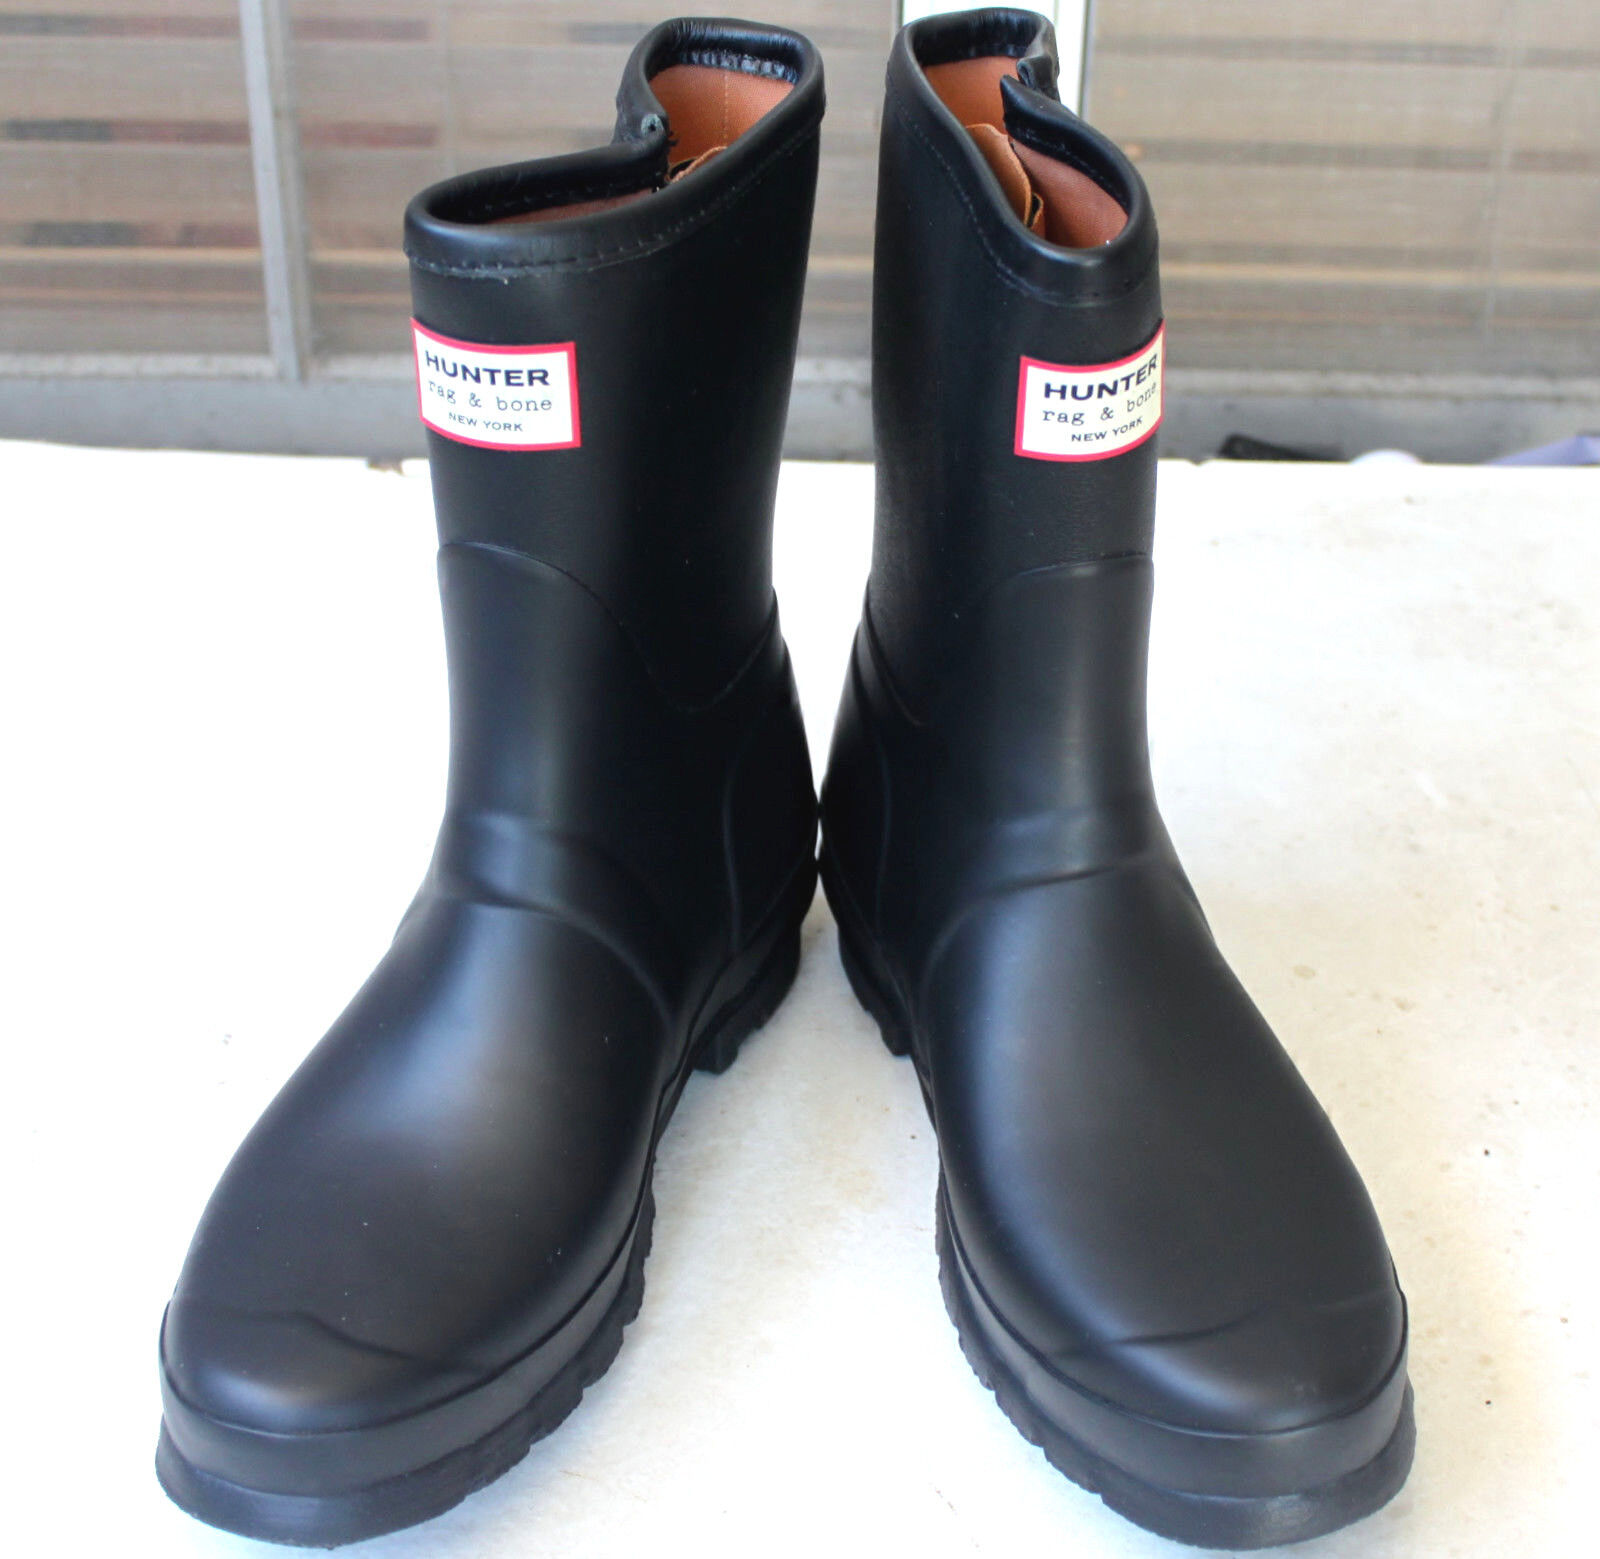 Rare Hunter Limited Rag & Bone Black Low Zipper Rain Rain Rain Boots US7 EU38 Gummistiefel 864916